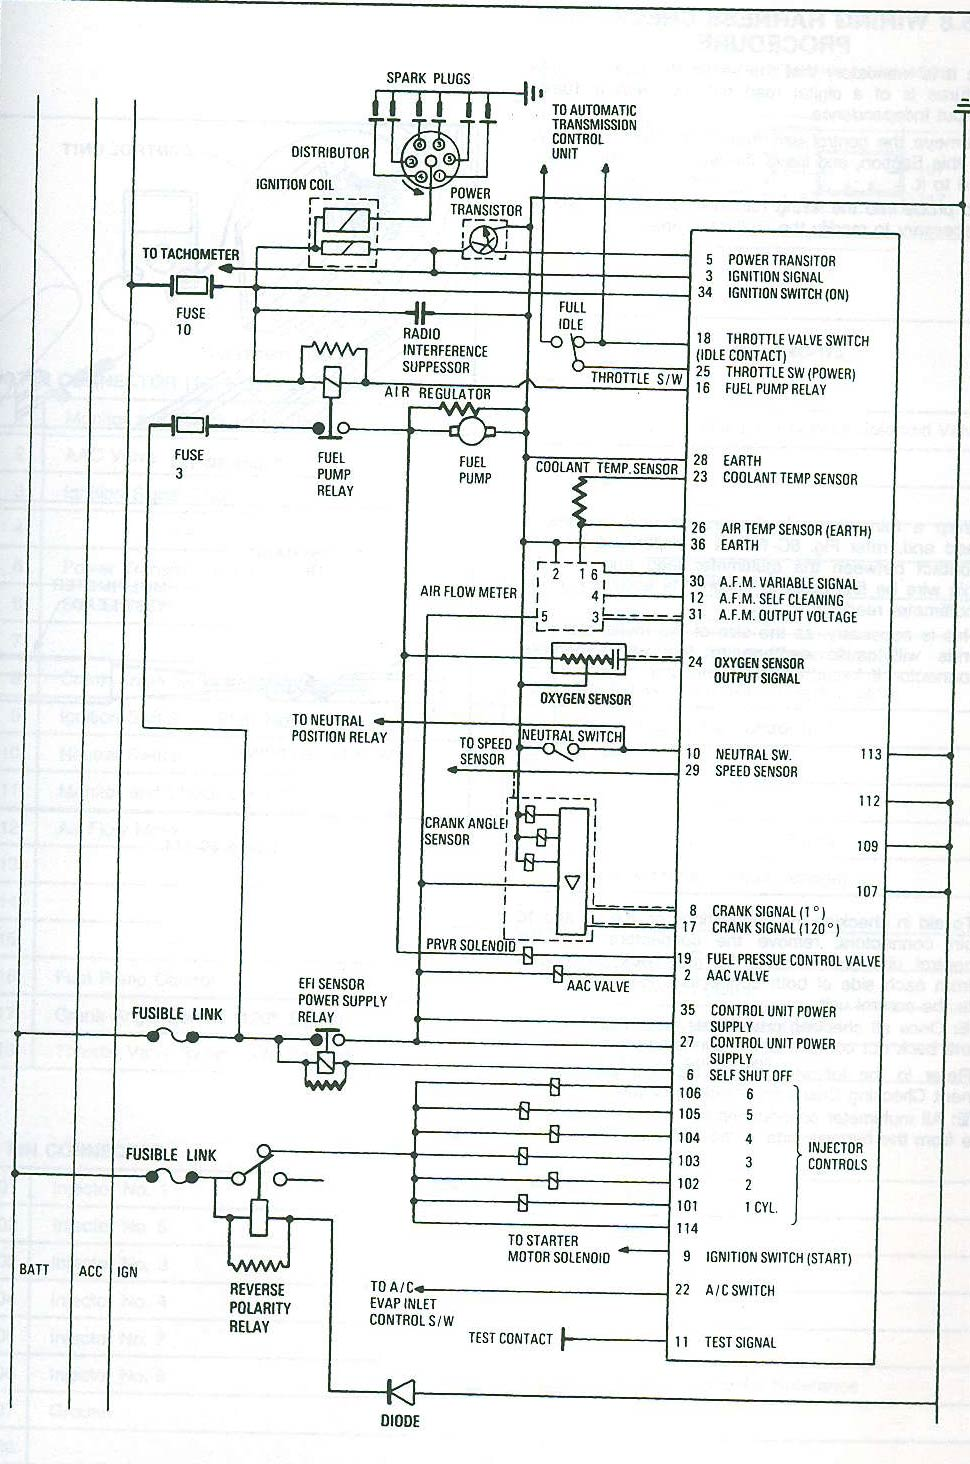 Vl Alternator Wiring Diagram - Wiring Diagram Article on